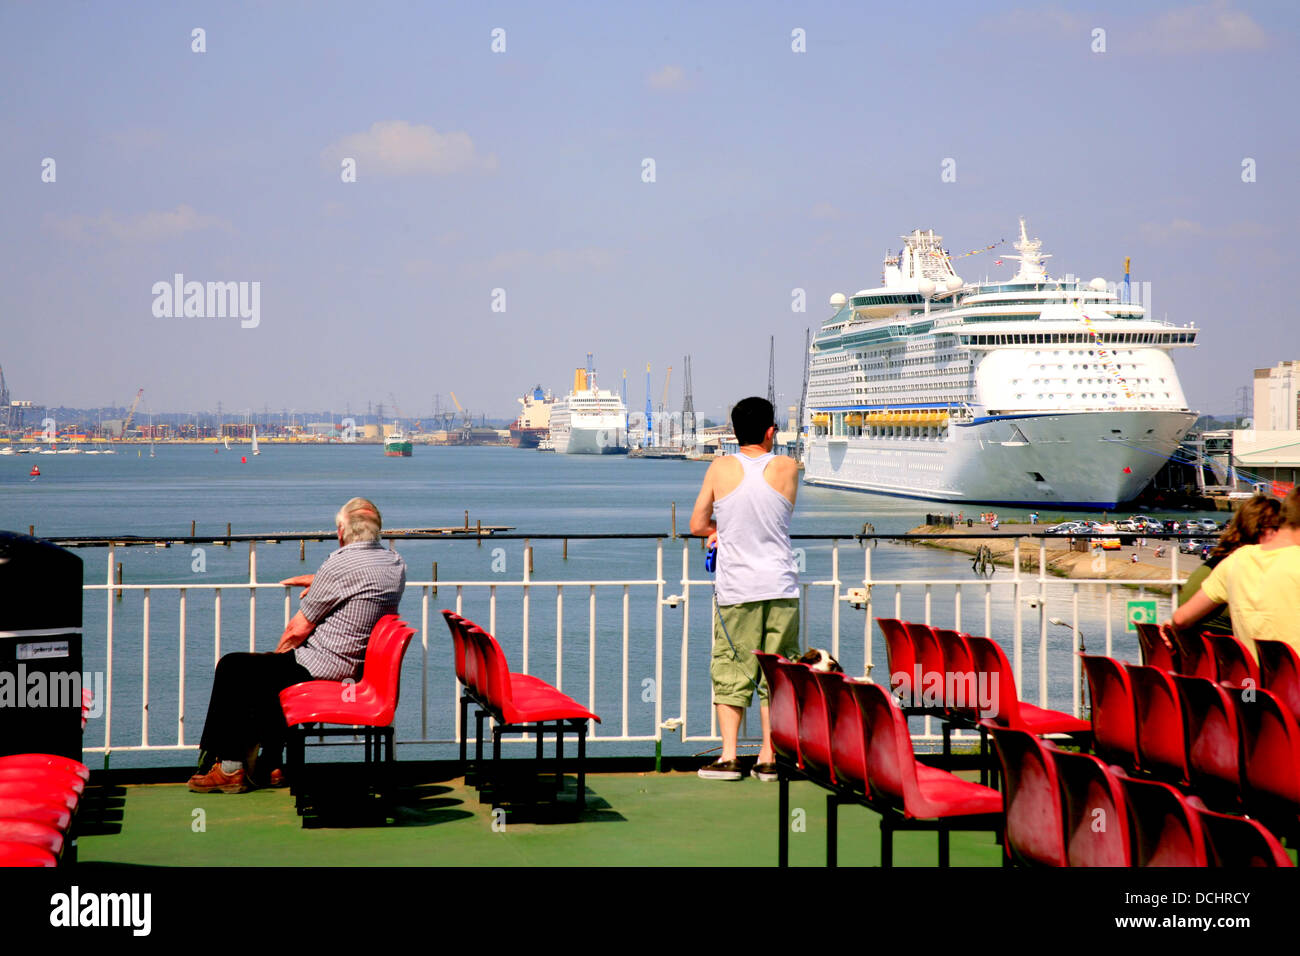 Cruise liners preparing for cruise in Southampton Docks, taken from the Isle of Wight ferry. - Stock Image